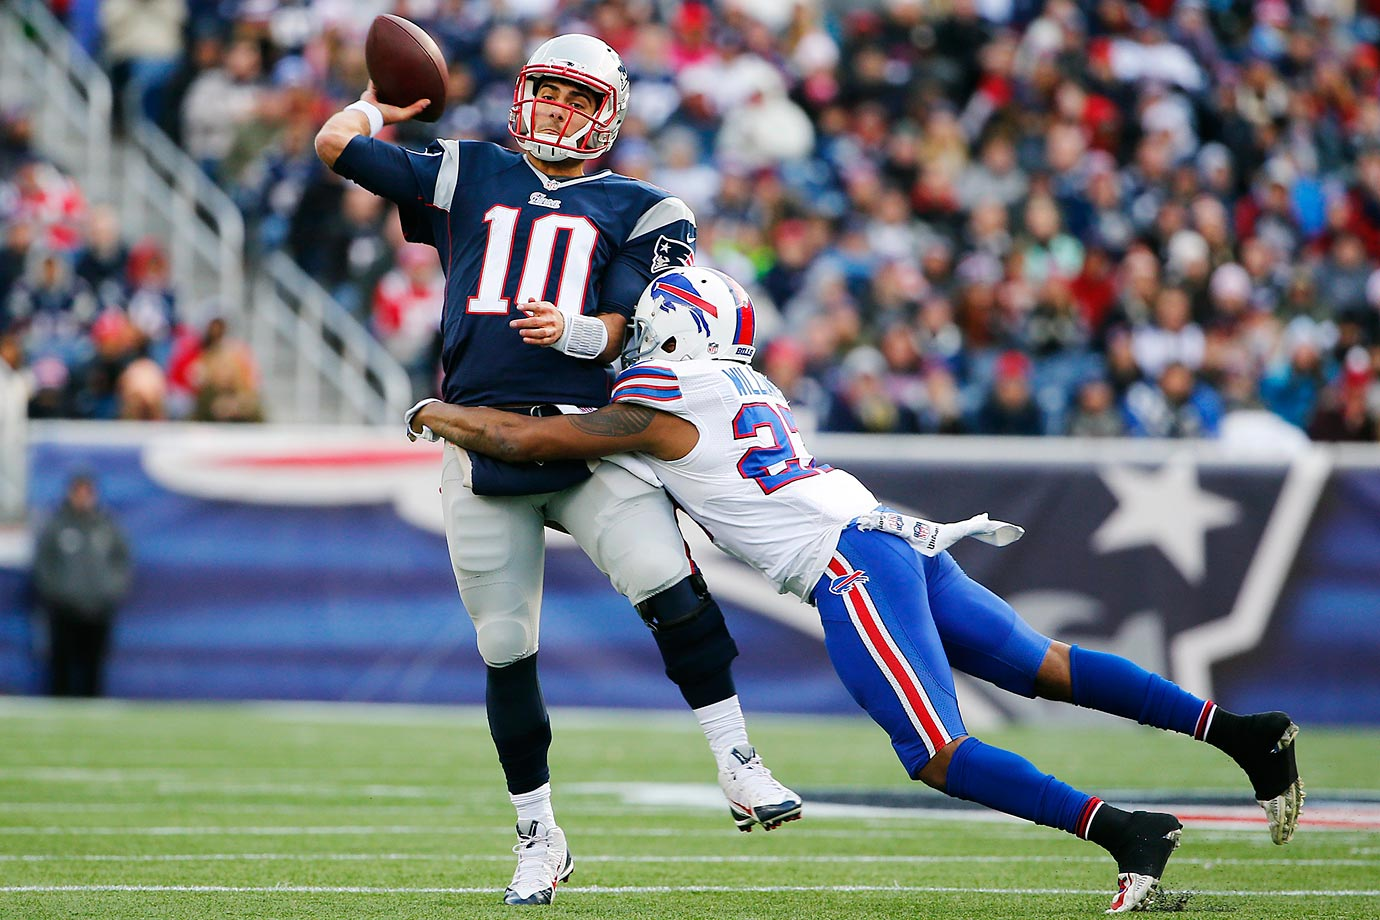 Resting most of their key players, New England lost to Buffalo 17-9 in a meaningless Week 17 game. Patriots rookie quarterback Jimmy Garoppolo saw his first significant action of the season, completing 10 of his 17 passes for 90 yards.